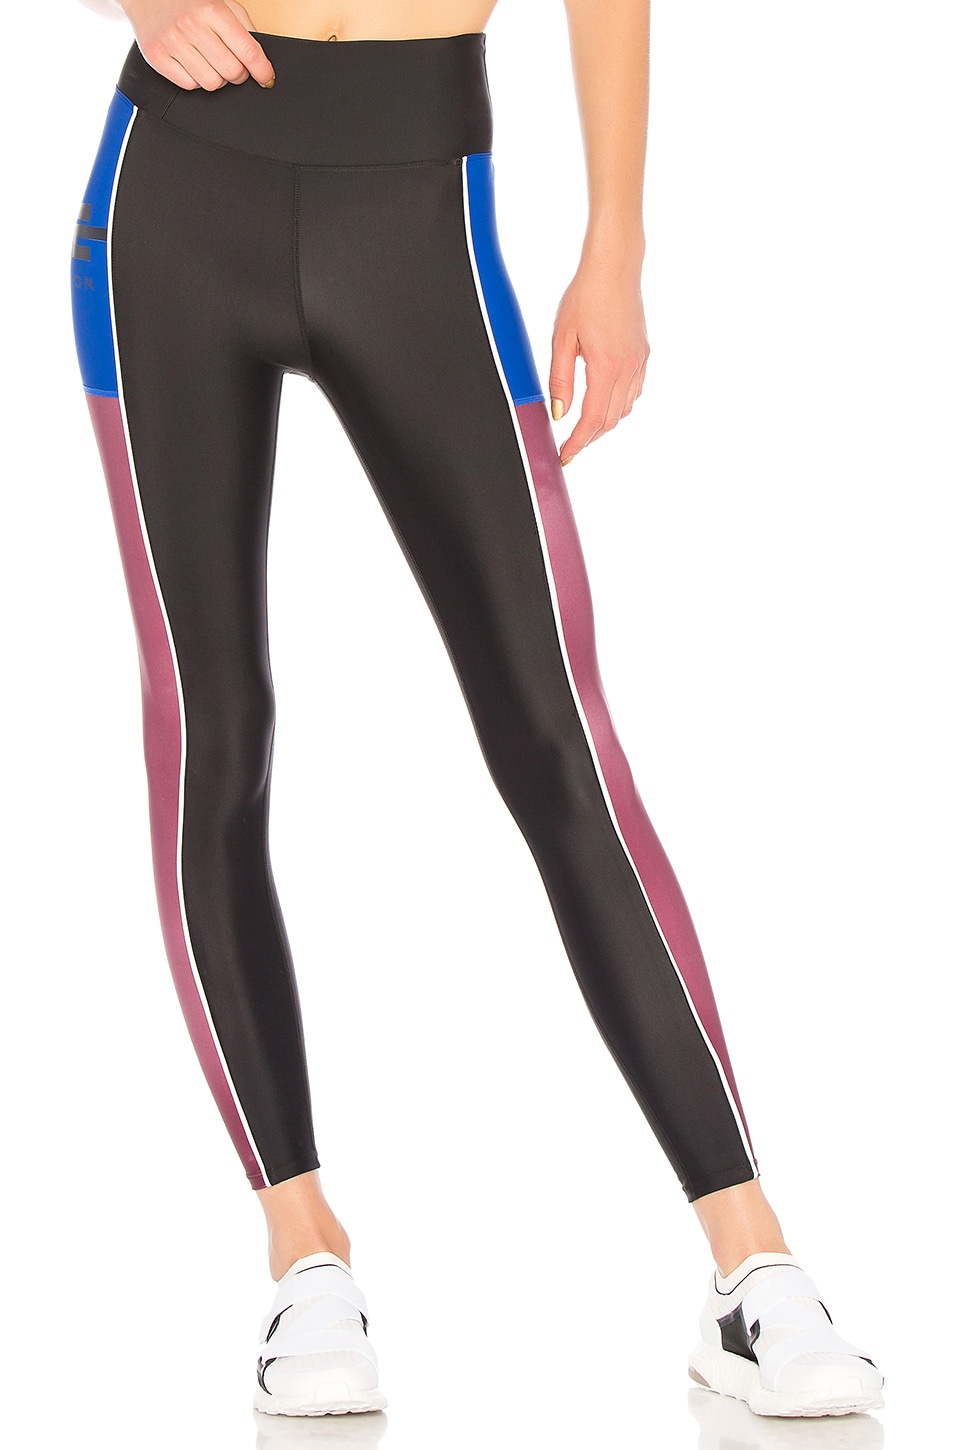 P.E NATION Without Limits Striped Stretch Leggings in Black